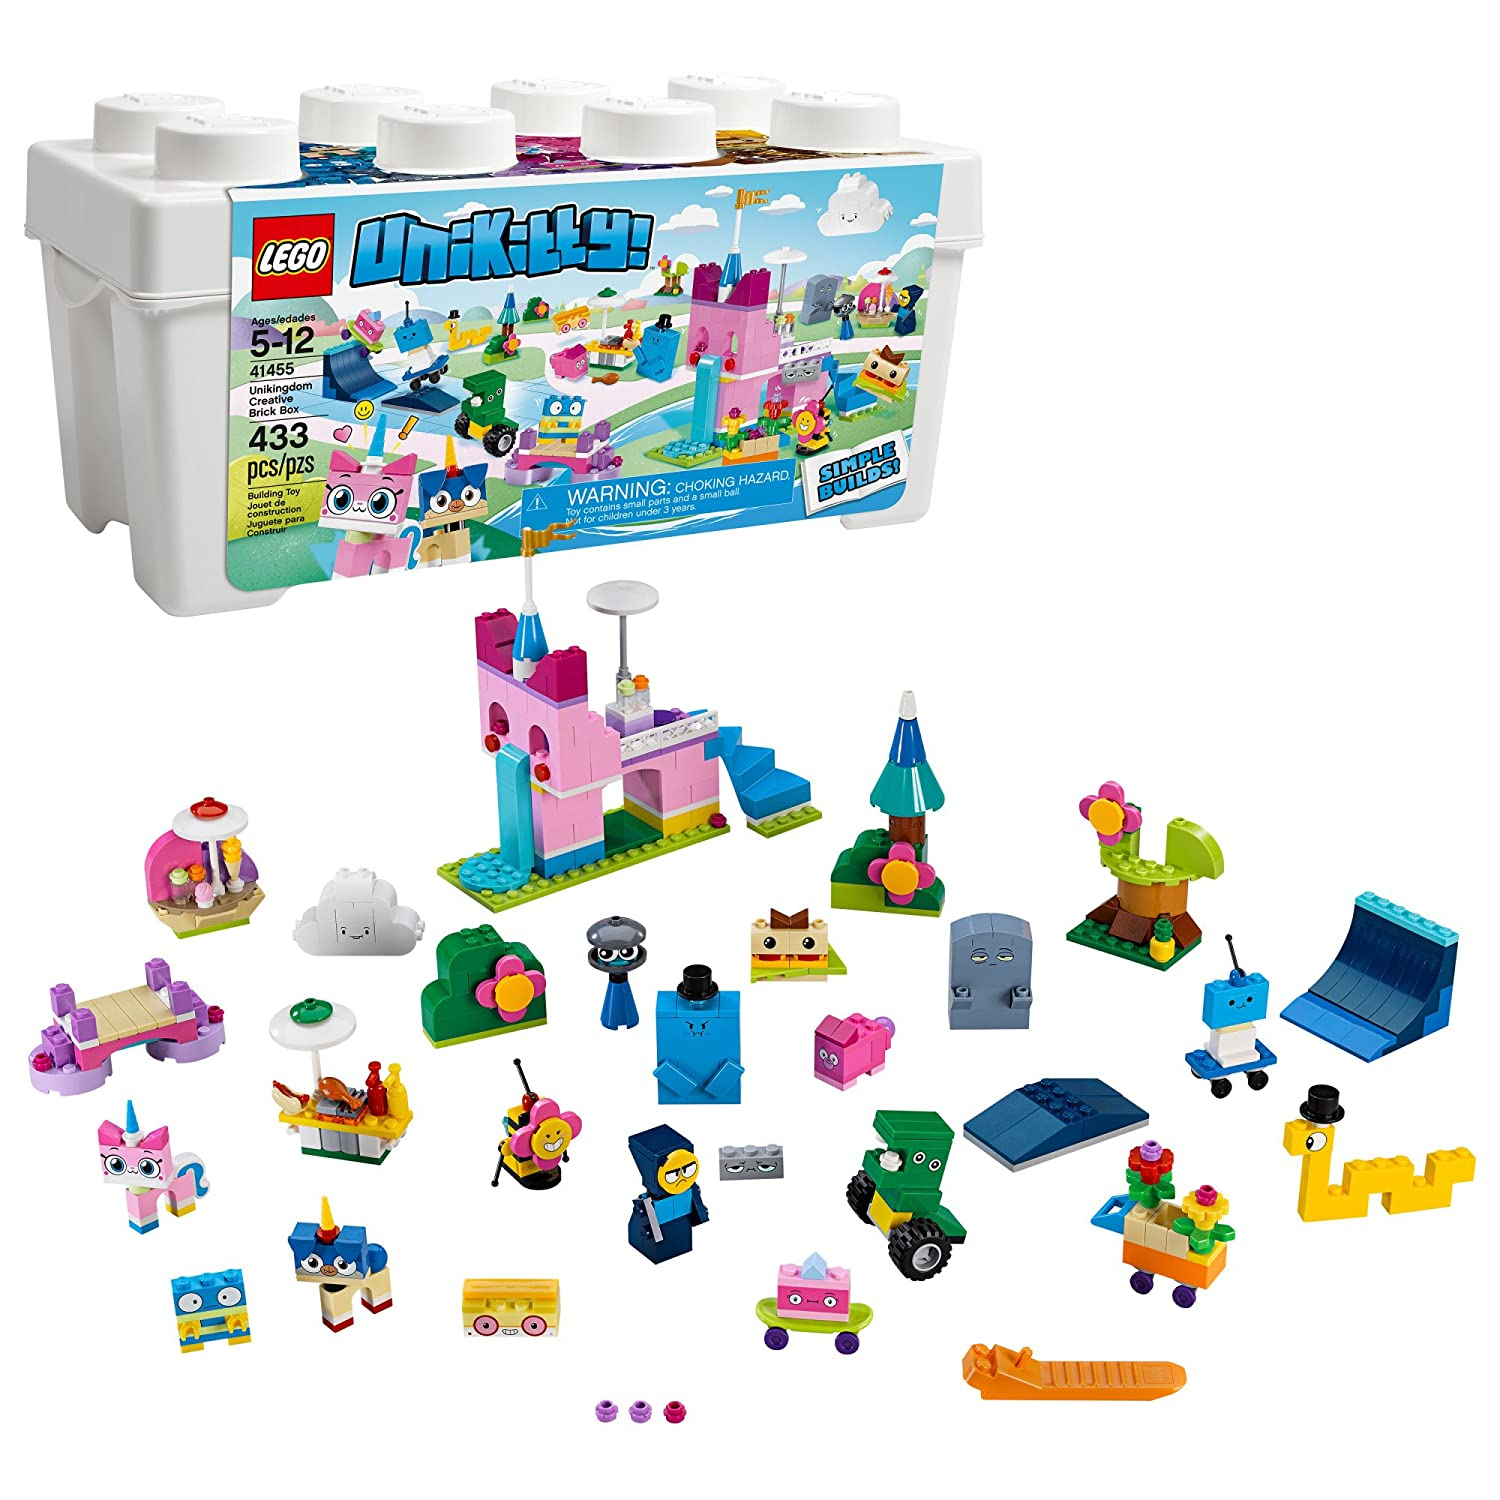 LEGO Unikitty Unikingdom Creative Brick Box Building Kit (433 Piece), Multicolor   B07C8T3PHK